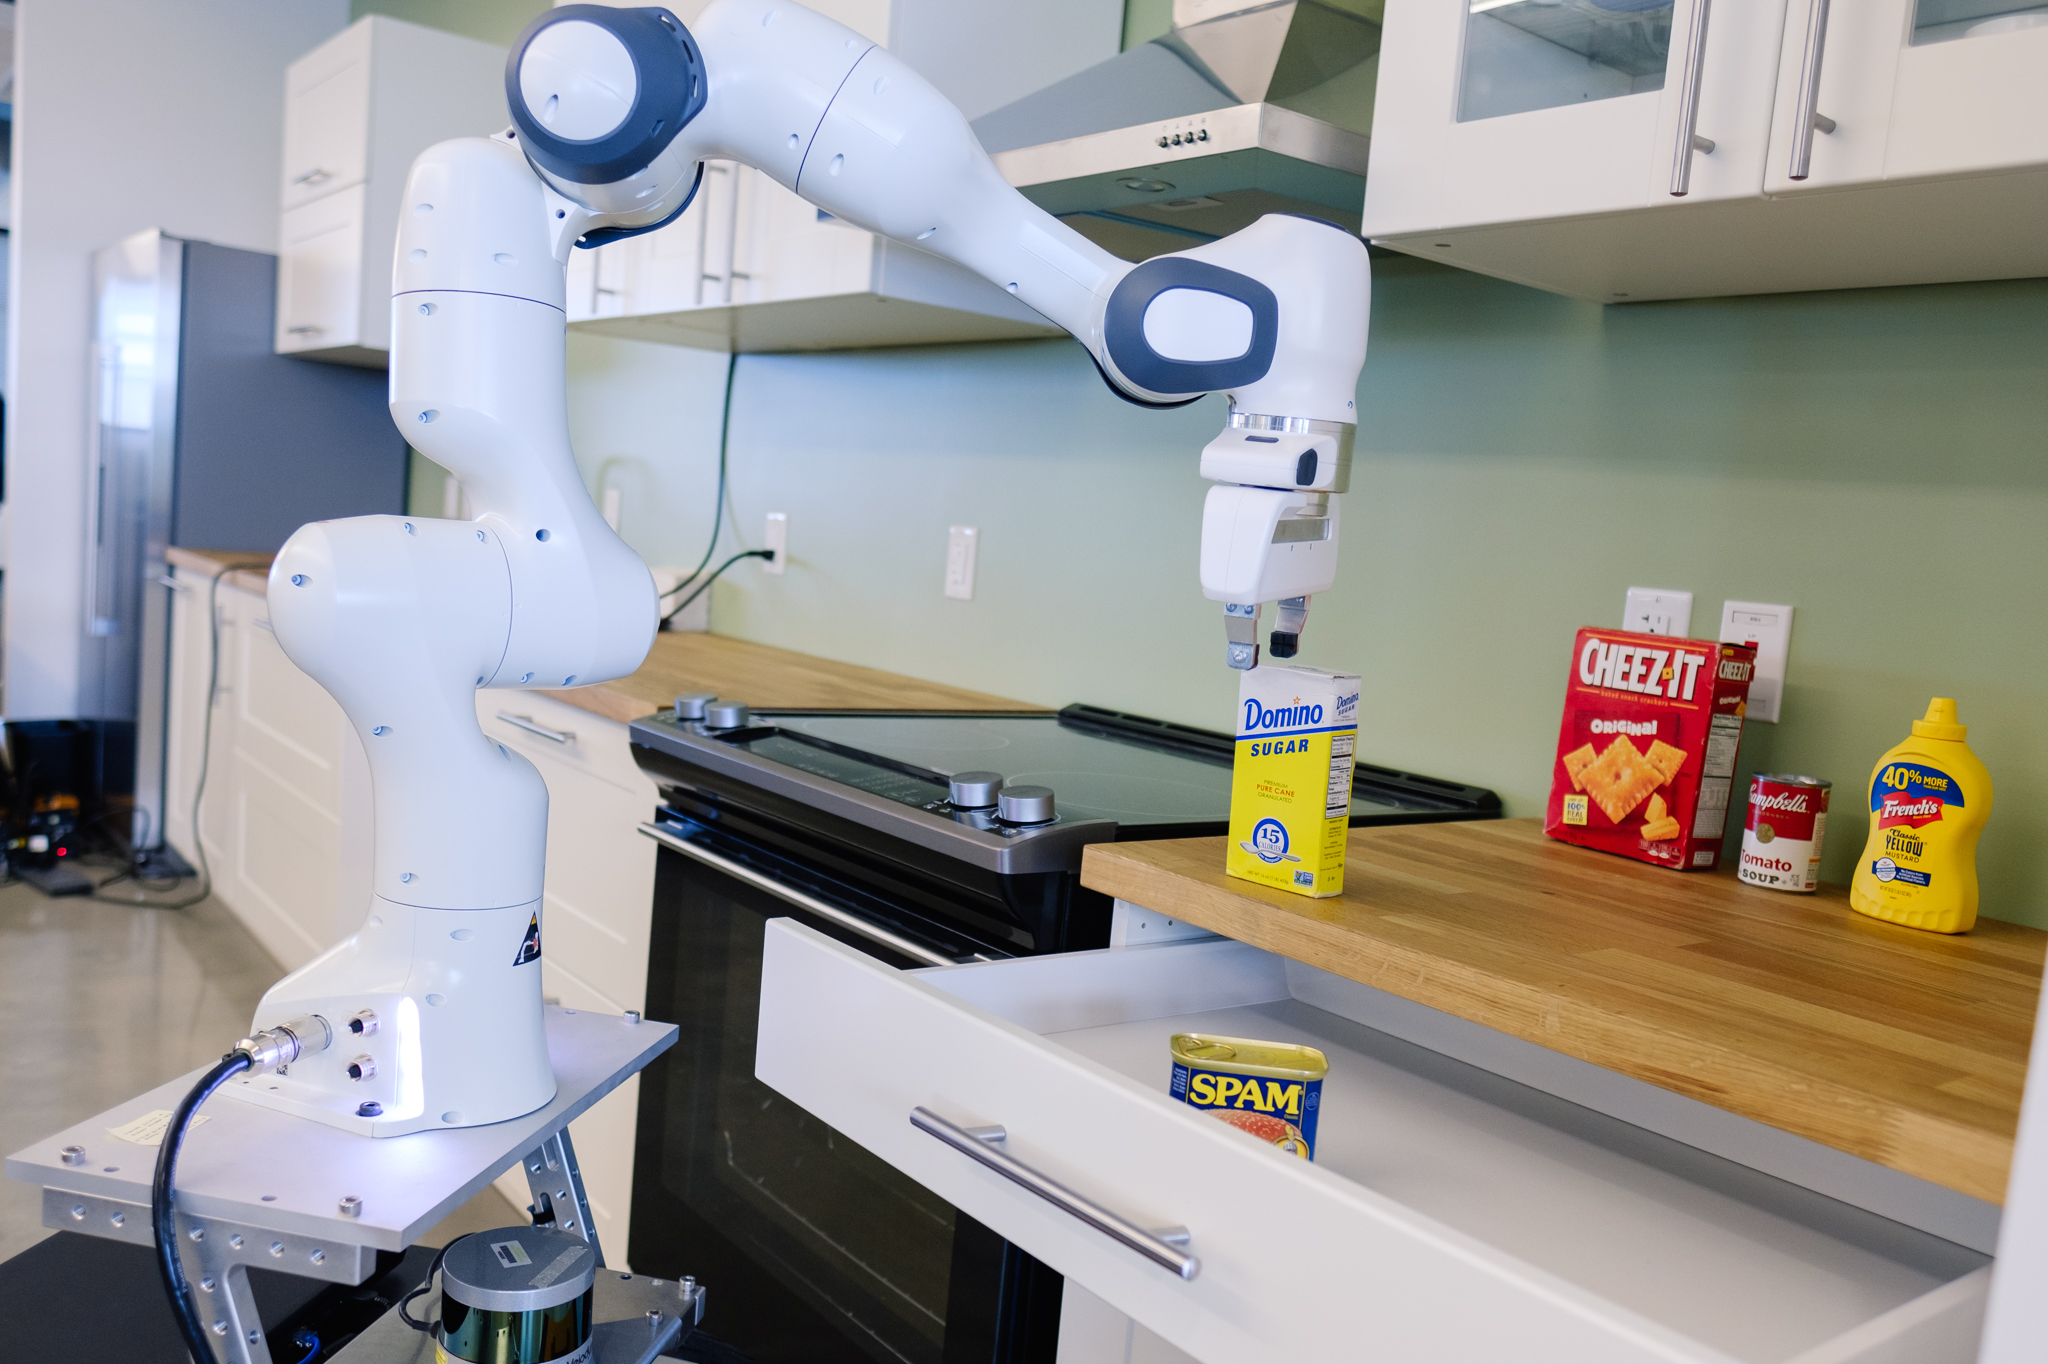 NVIDIA Opens Robotics Research Lab in Seattle - NVIDIA